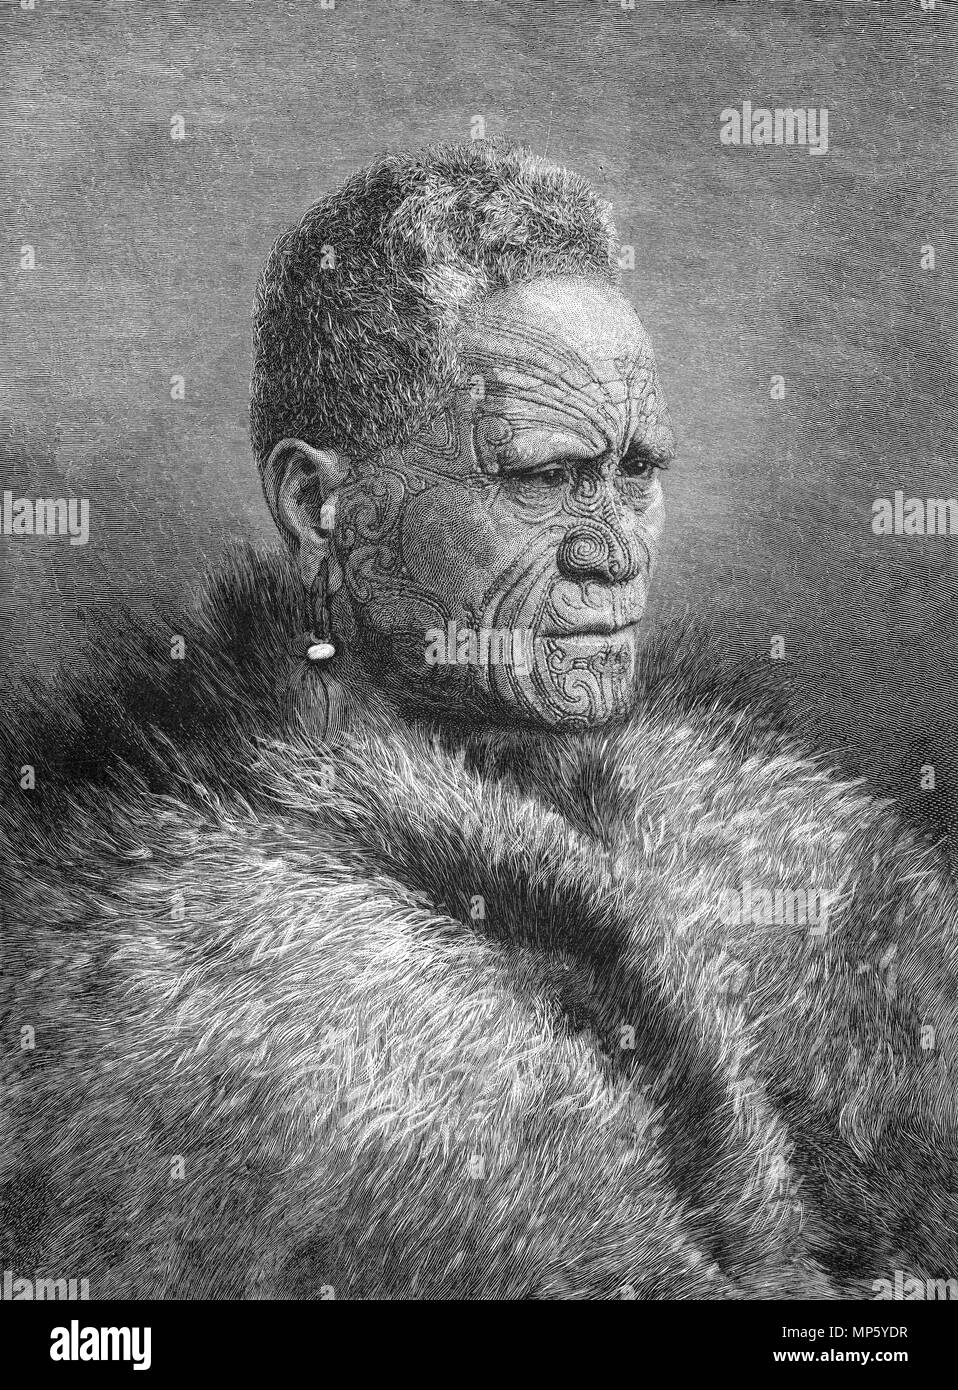 Engraving of the Maori King Tawihao, New Zealand. From the Picturesque Atlas of Australasia Vol 3, 1886 - Stock Image